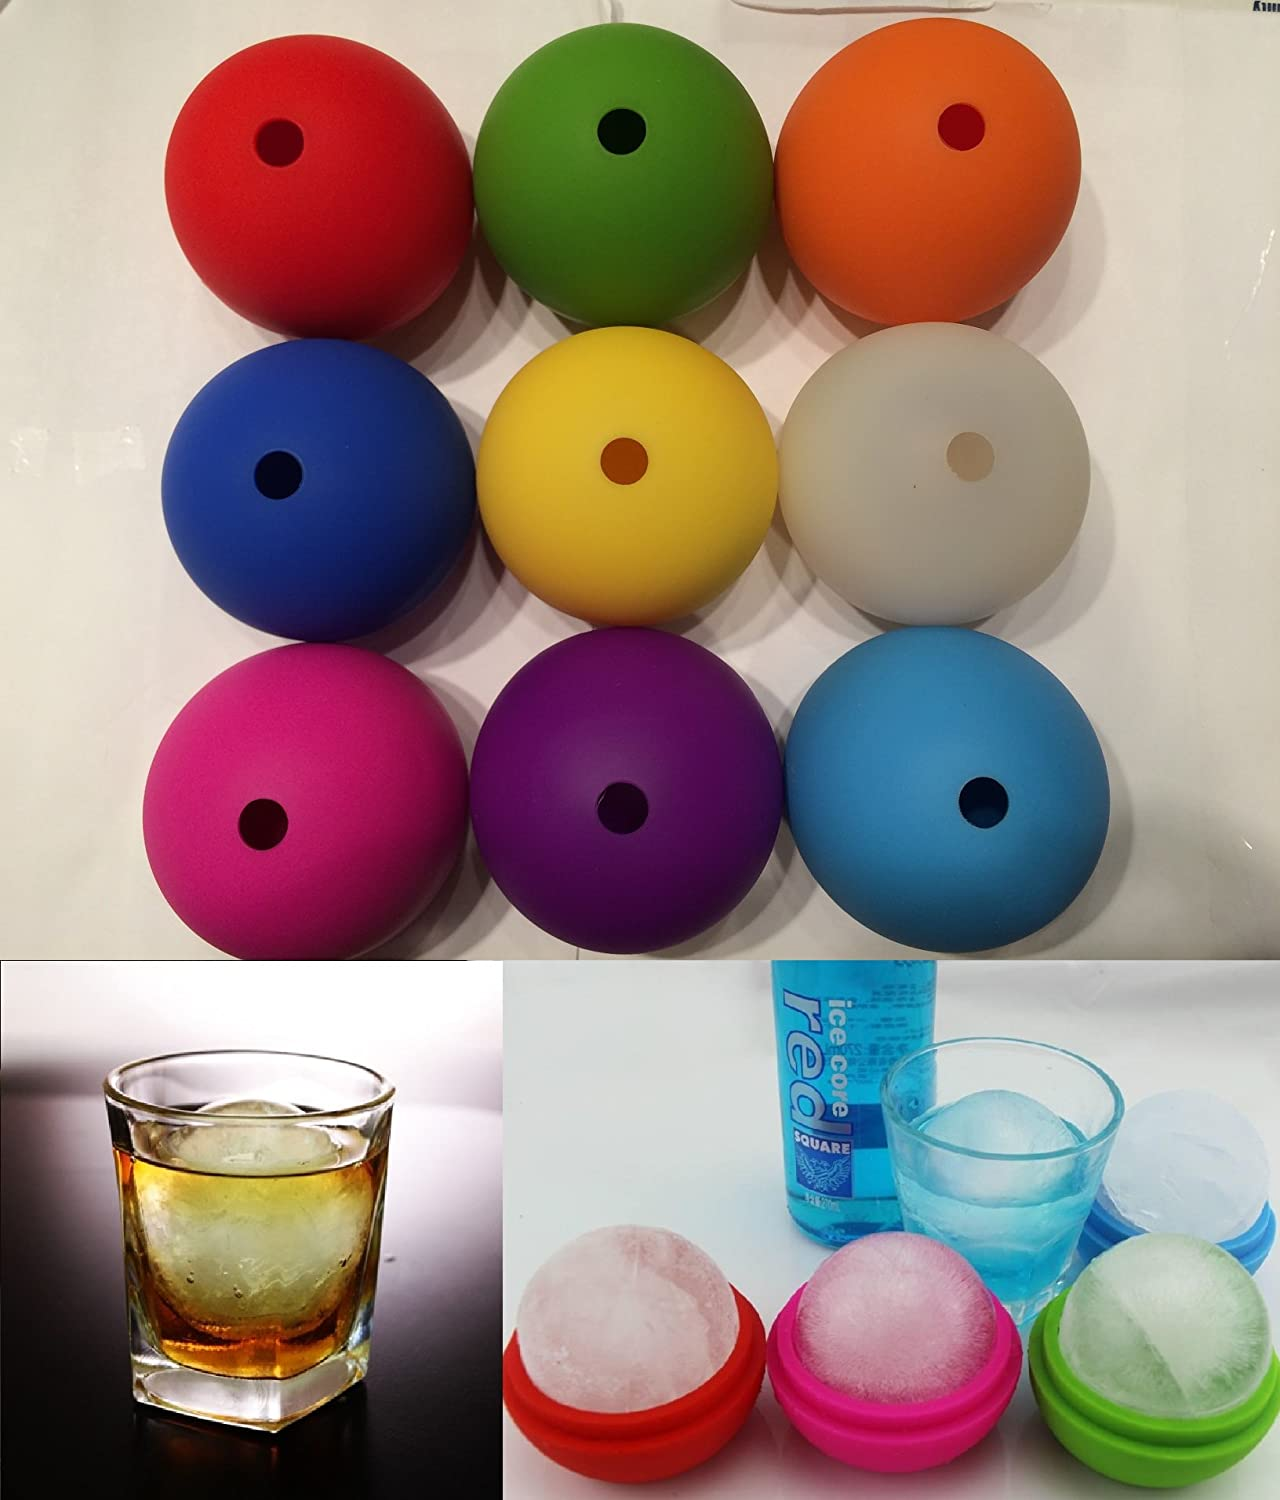 """C-Spin 2.5"""" DIY Whiskey Ice Cube Silicon Ball Maker Mold Sphere/Round Shaped Good for Party (Yellow)"""